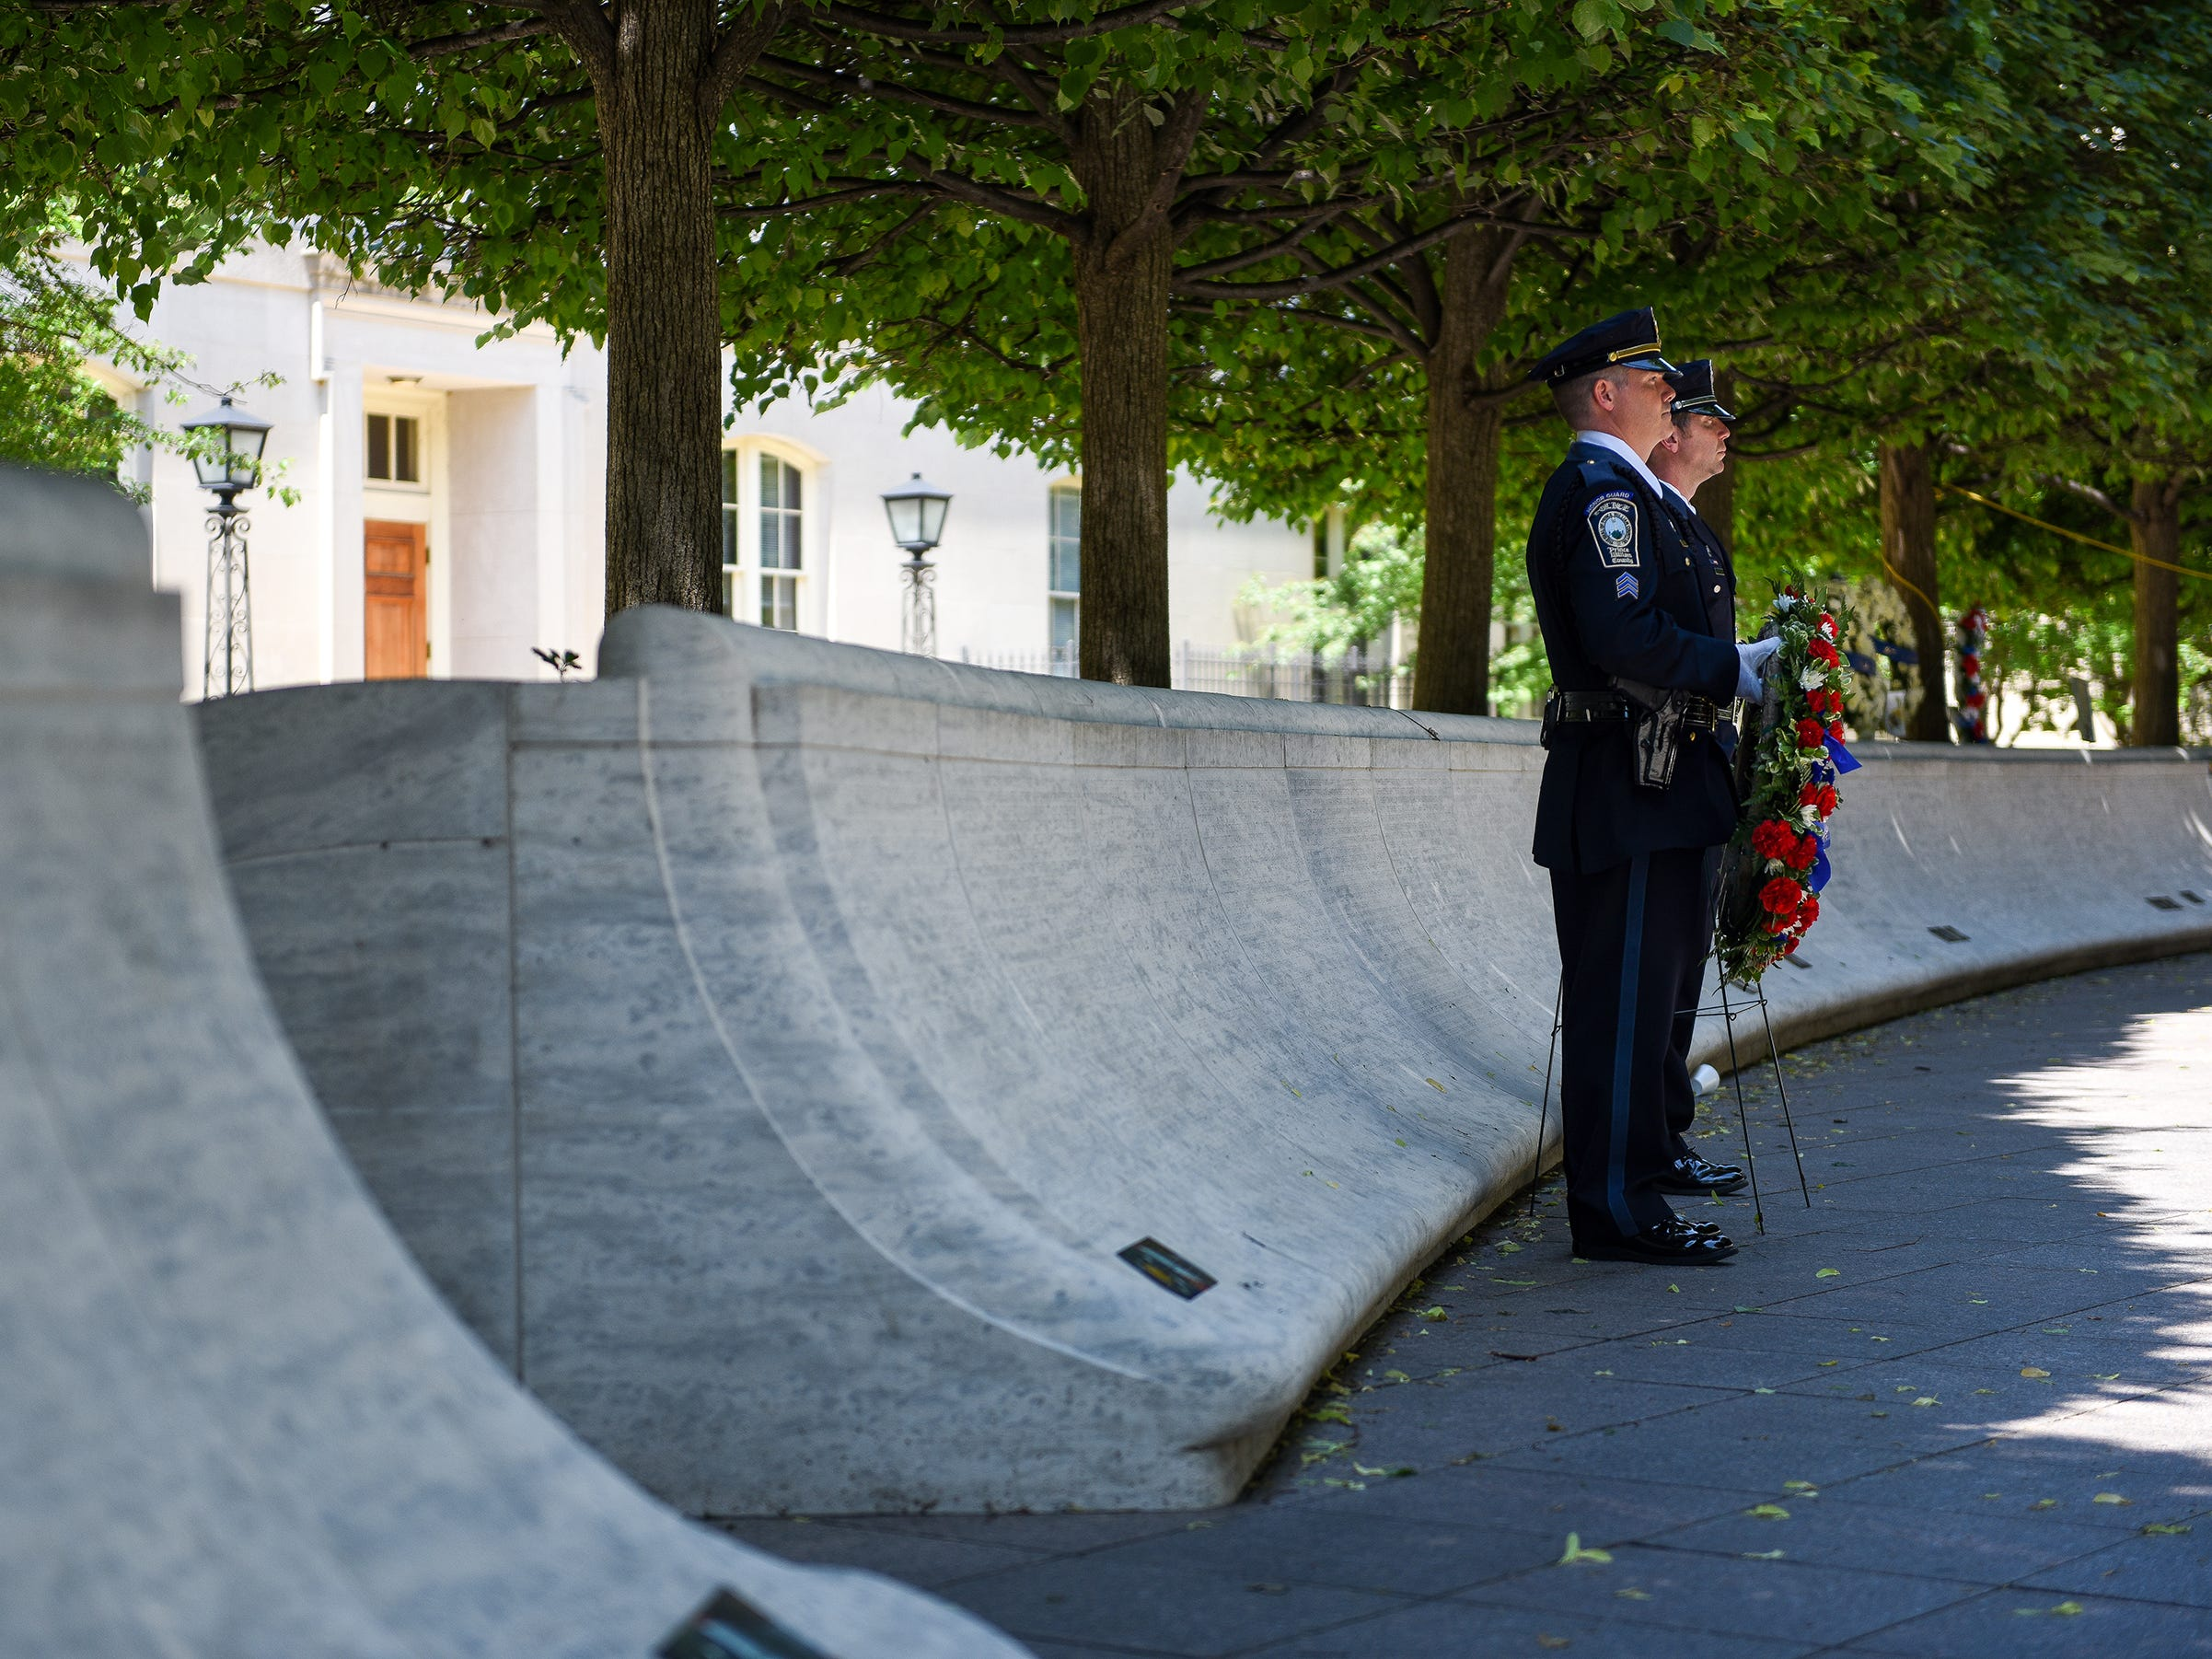 The National Law Enforcement Officers Memorial is located in Washington D.C. The memorial is where those who died are remembered while providing a place where survivors can pay tribute to their loved ones.